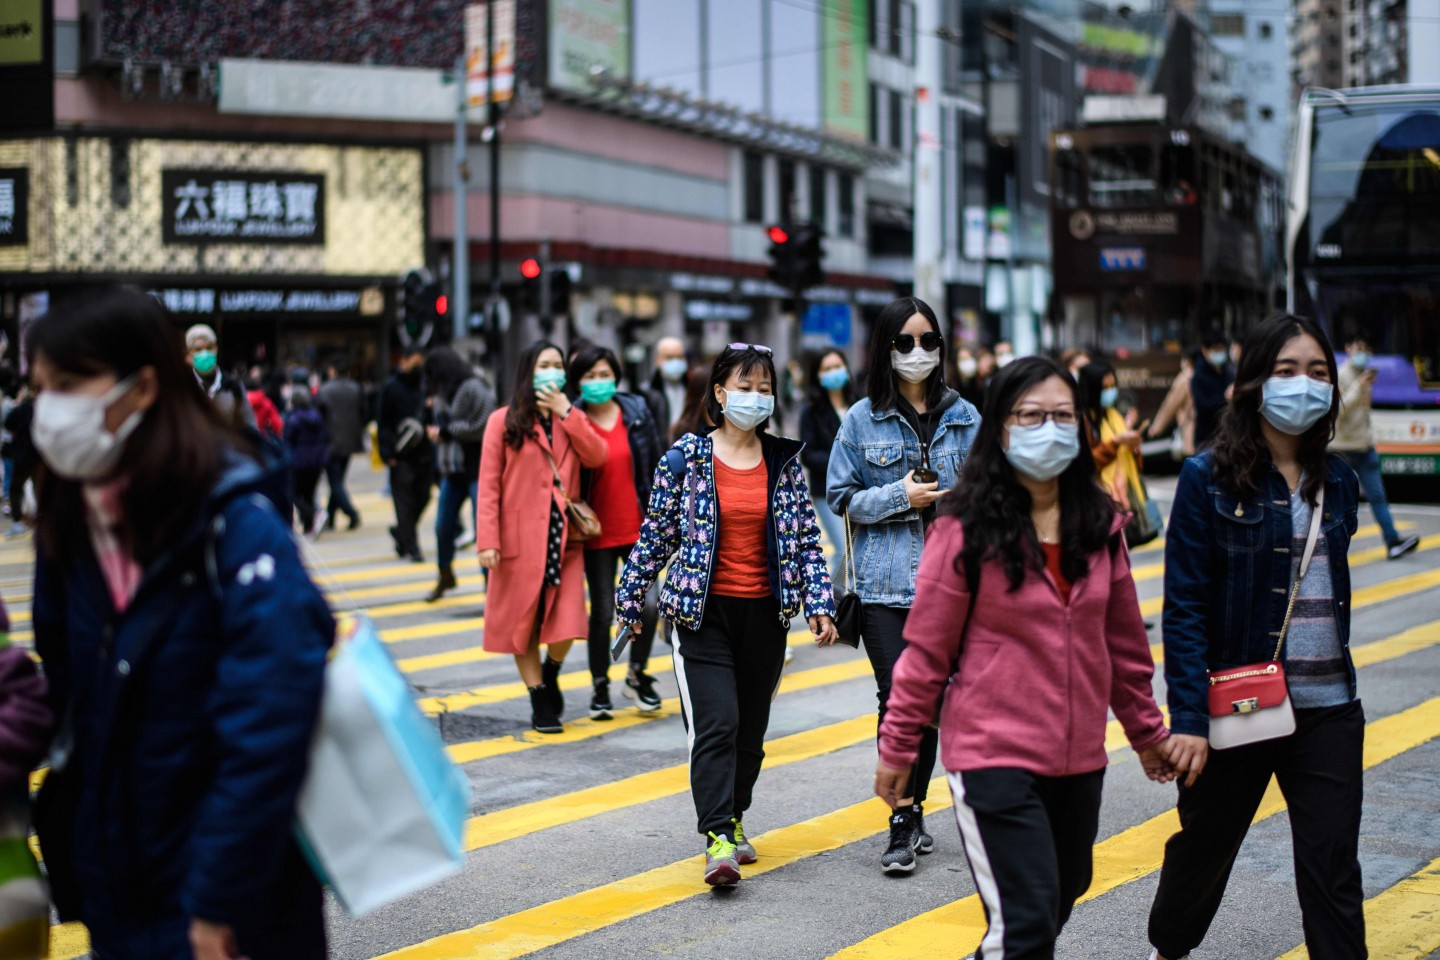 The scale of the Wuhan coronavirus outbreak triggered frightening memories of the 2003 SARS epidemic. In this photo taken in Hong Kong on 27 January 2020, pedestrians are seen wearing face masks while crossing the road as a preventative measure following the Wuhan coronavirus outbreak. (Anthony Wallace/AFP)